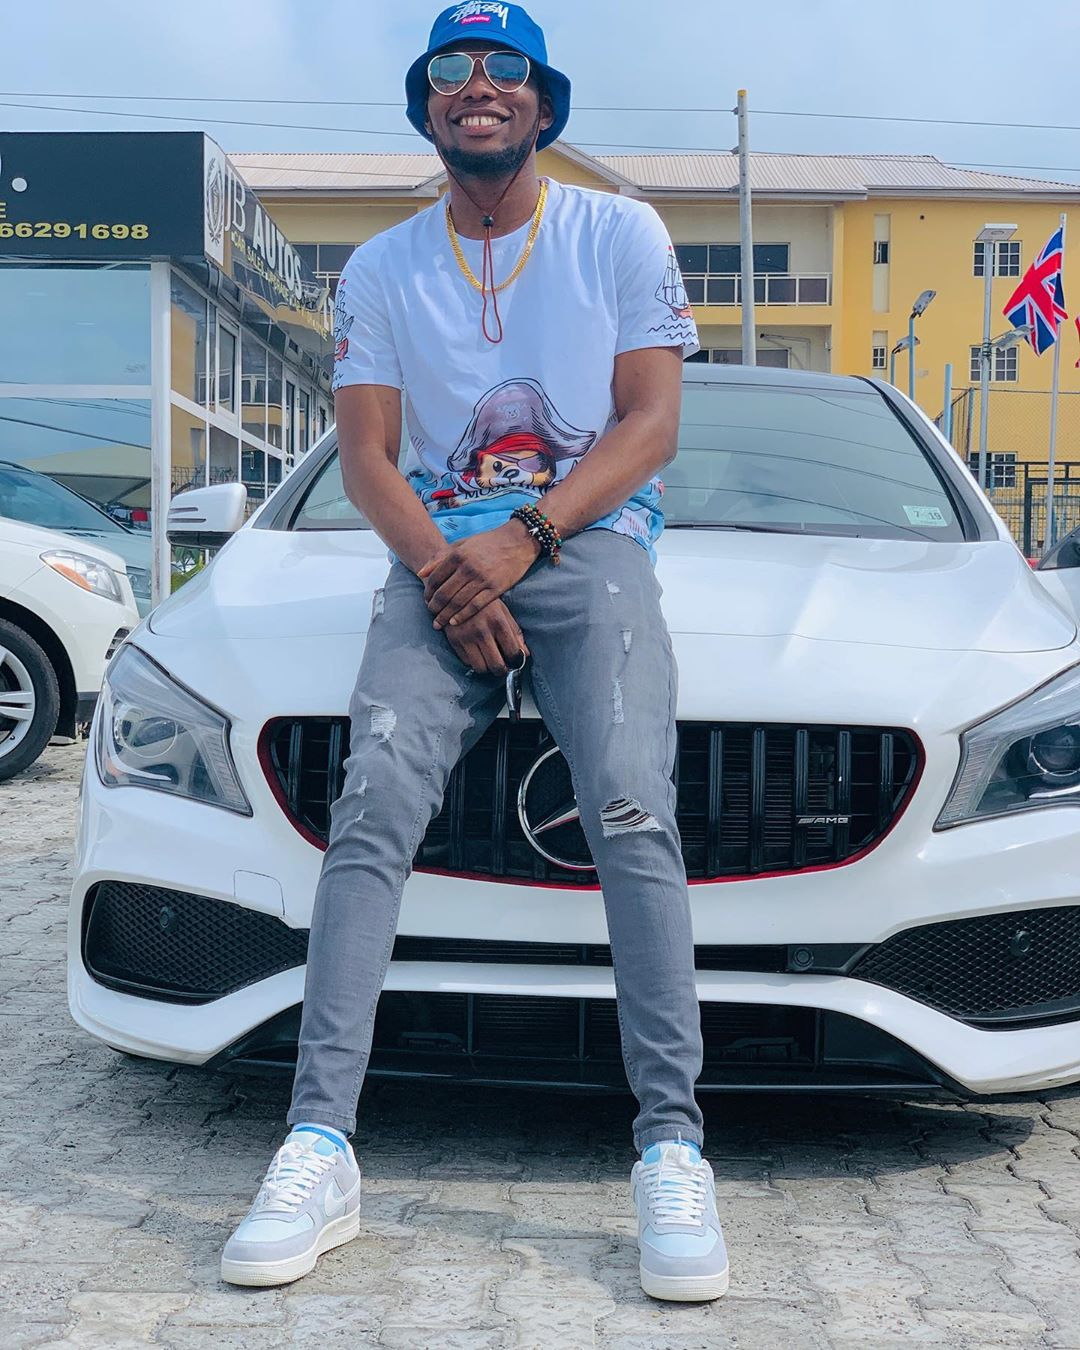 Victor AD Buys Himself A Brand New Mercedes Benz